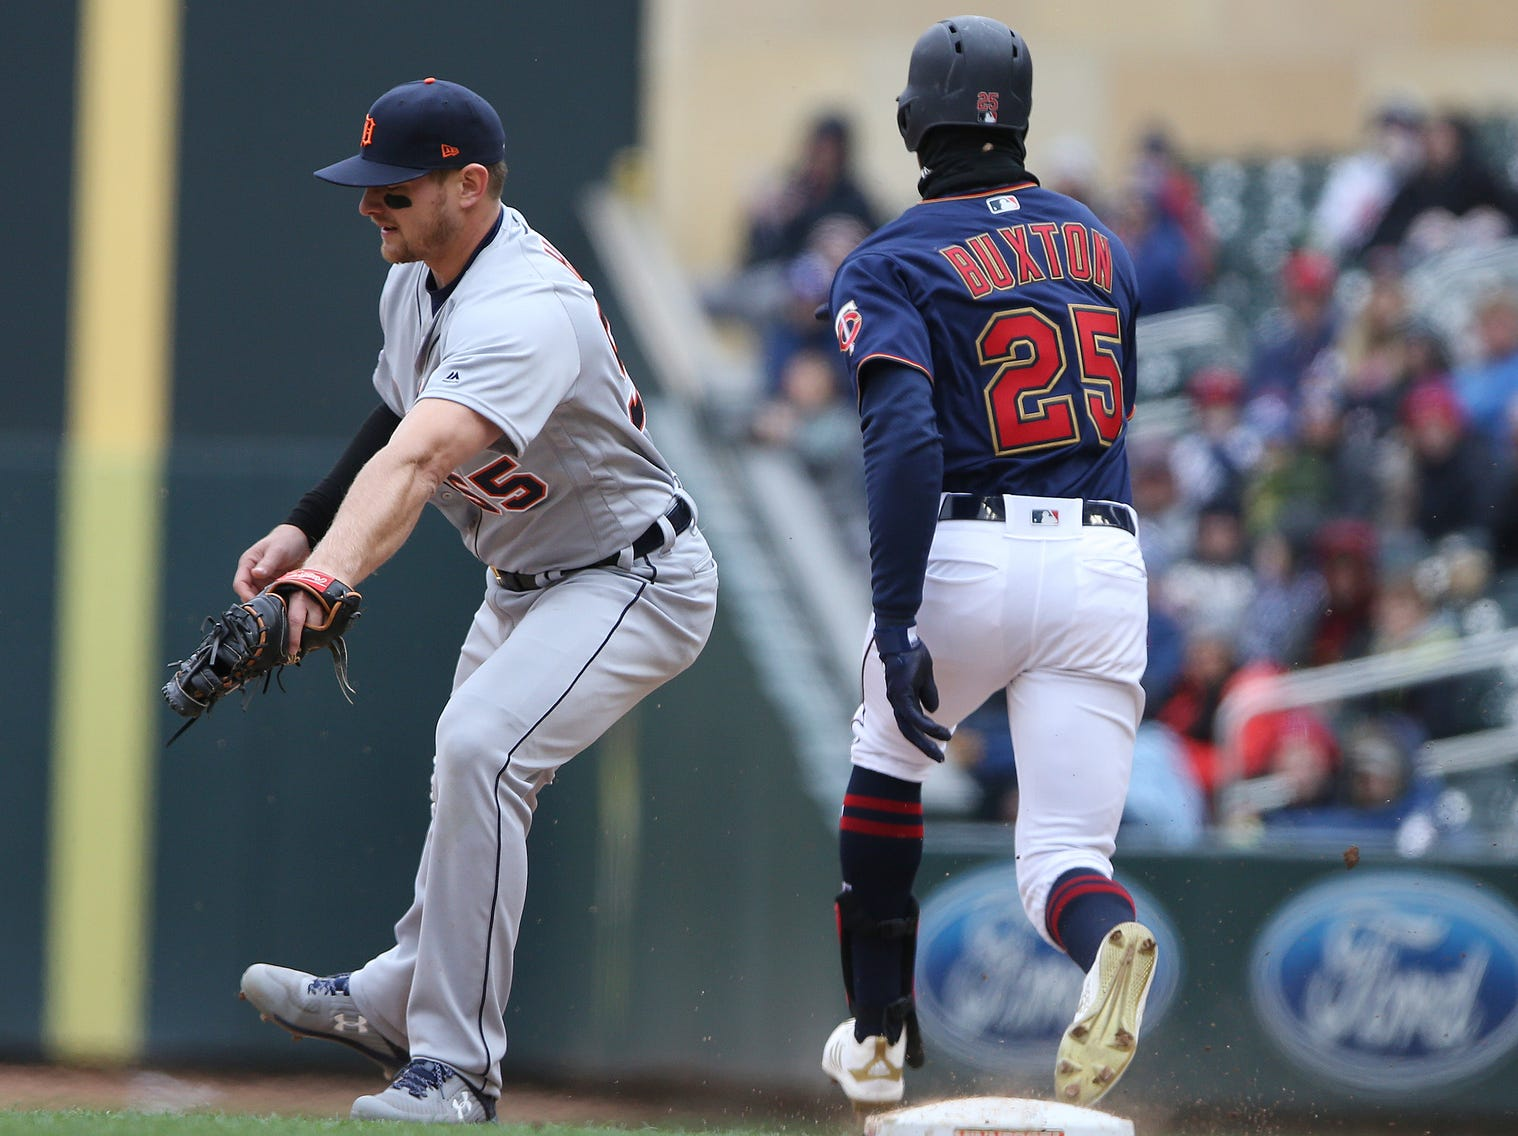 Detroit Tigers' John Hicks gets Minnesota Twins' Bryon Buxton out at first base. The Twins won 4-3.